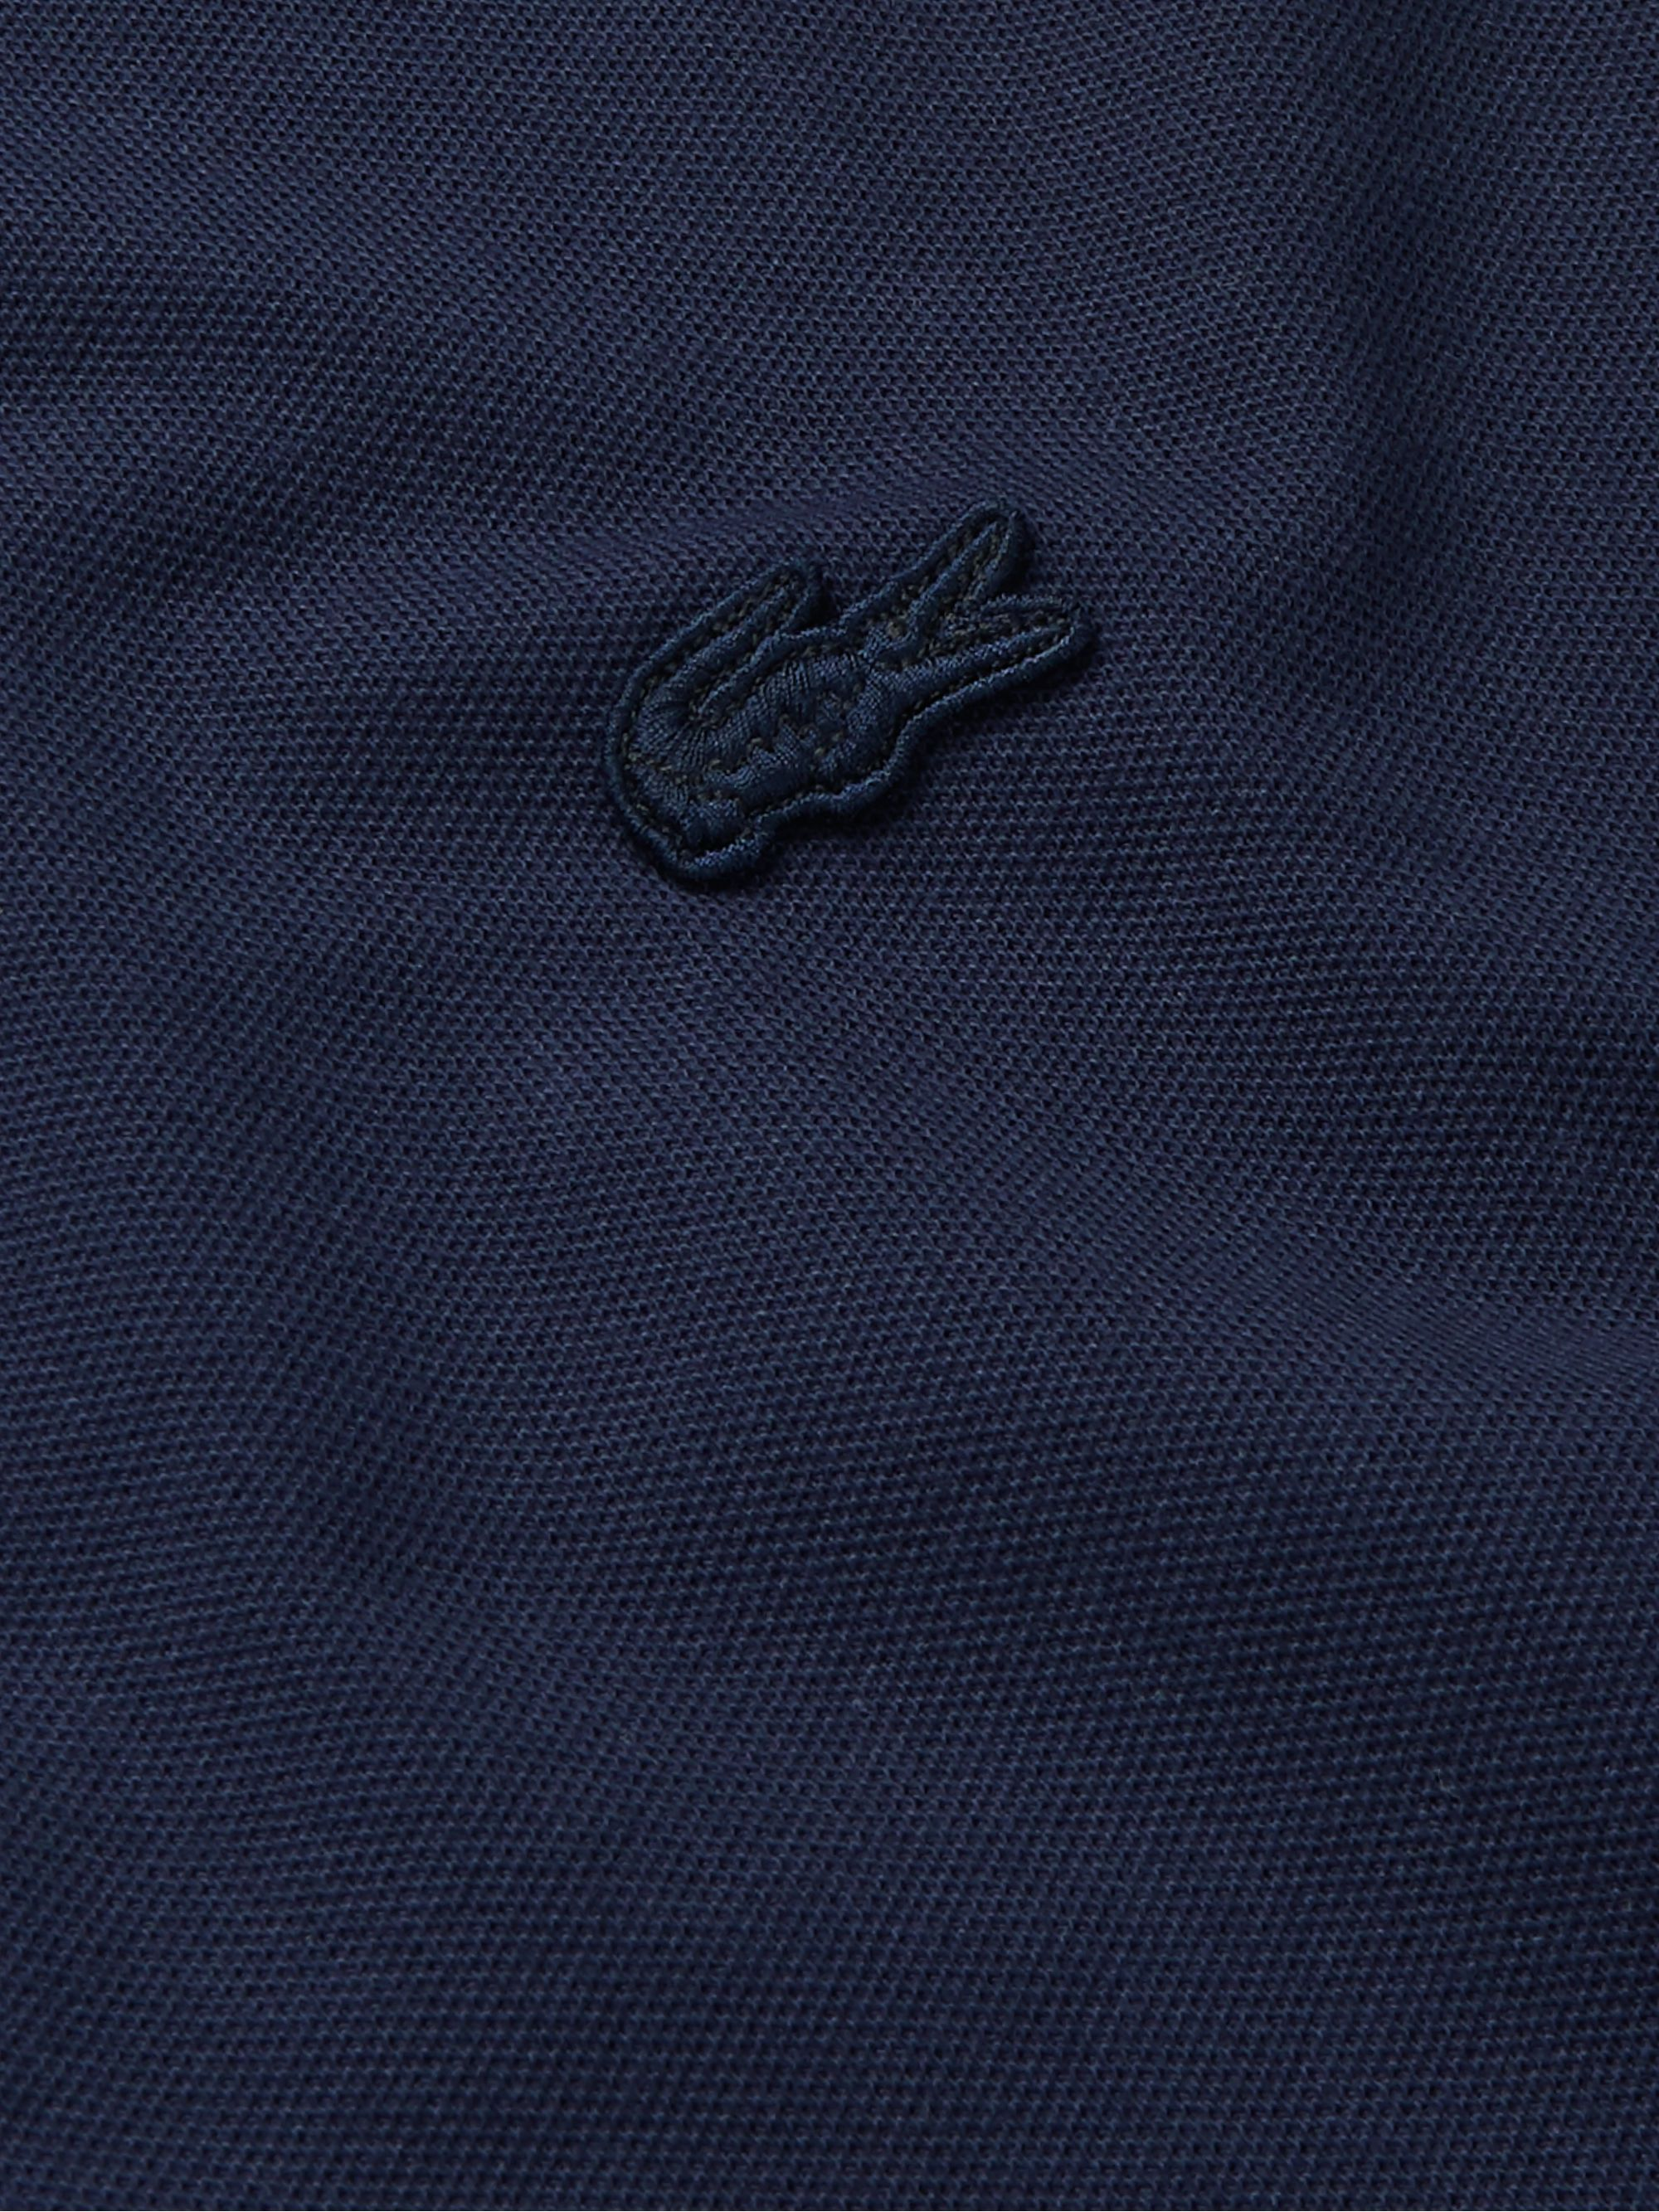 Lacoste Paris Cotton-Piqué Polo Shirt